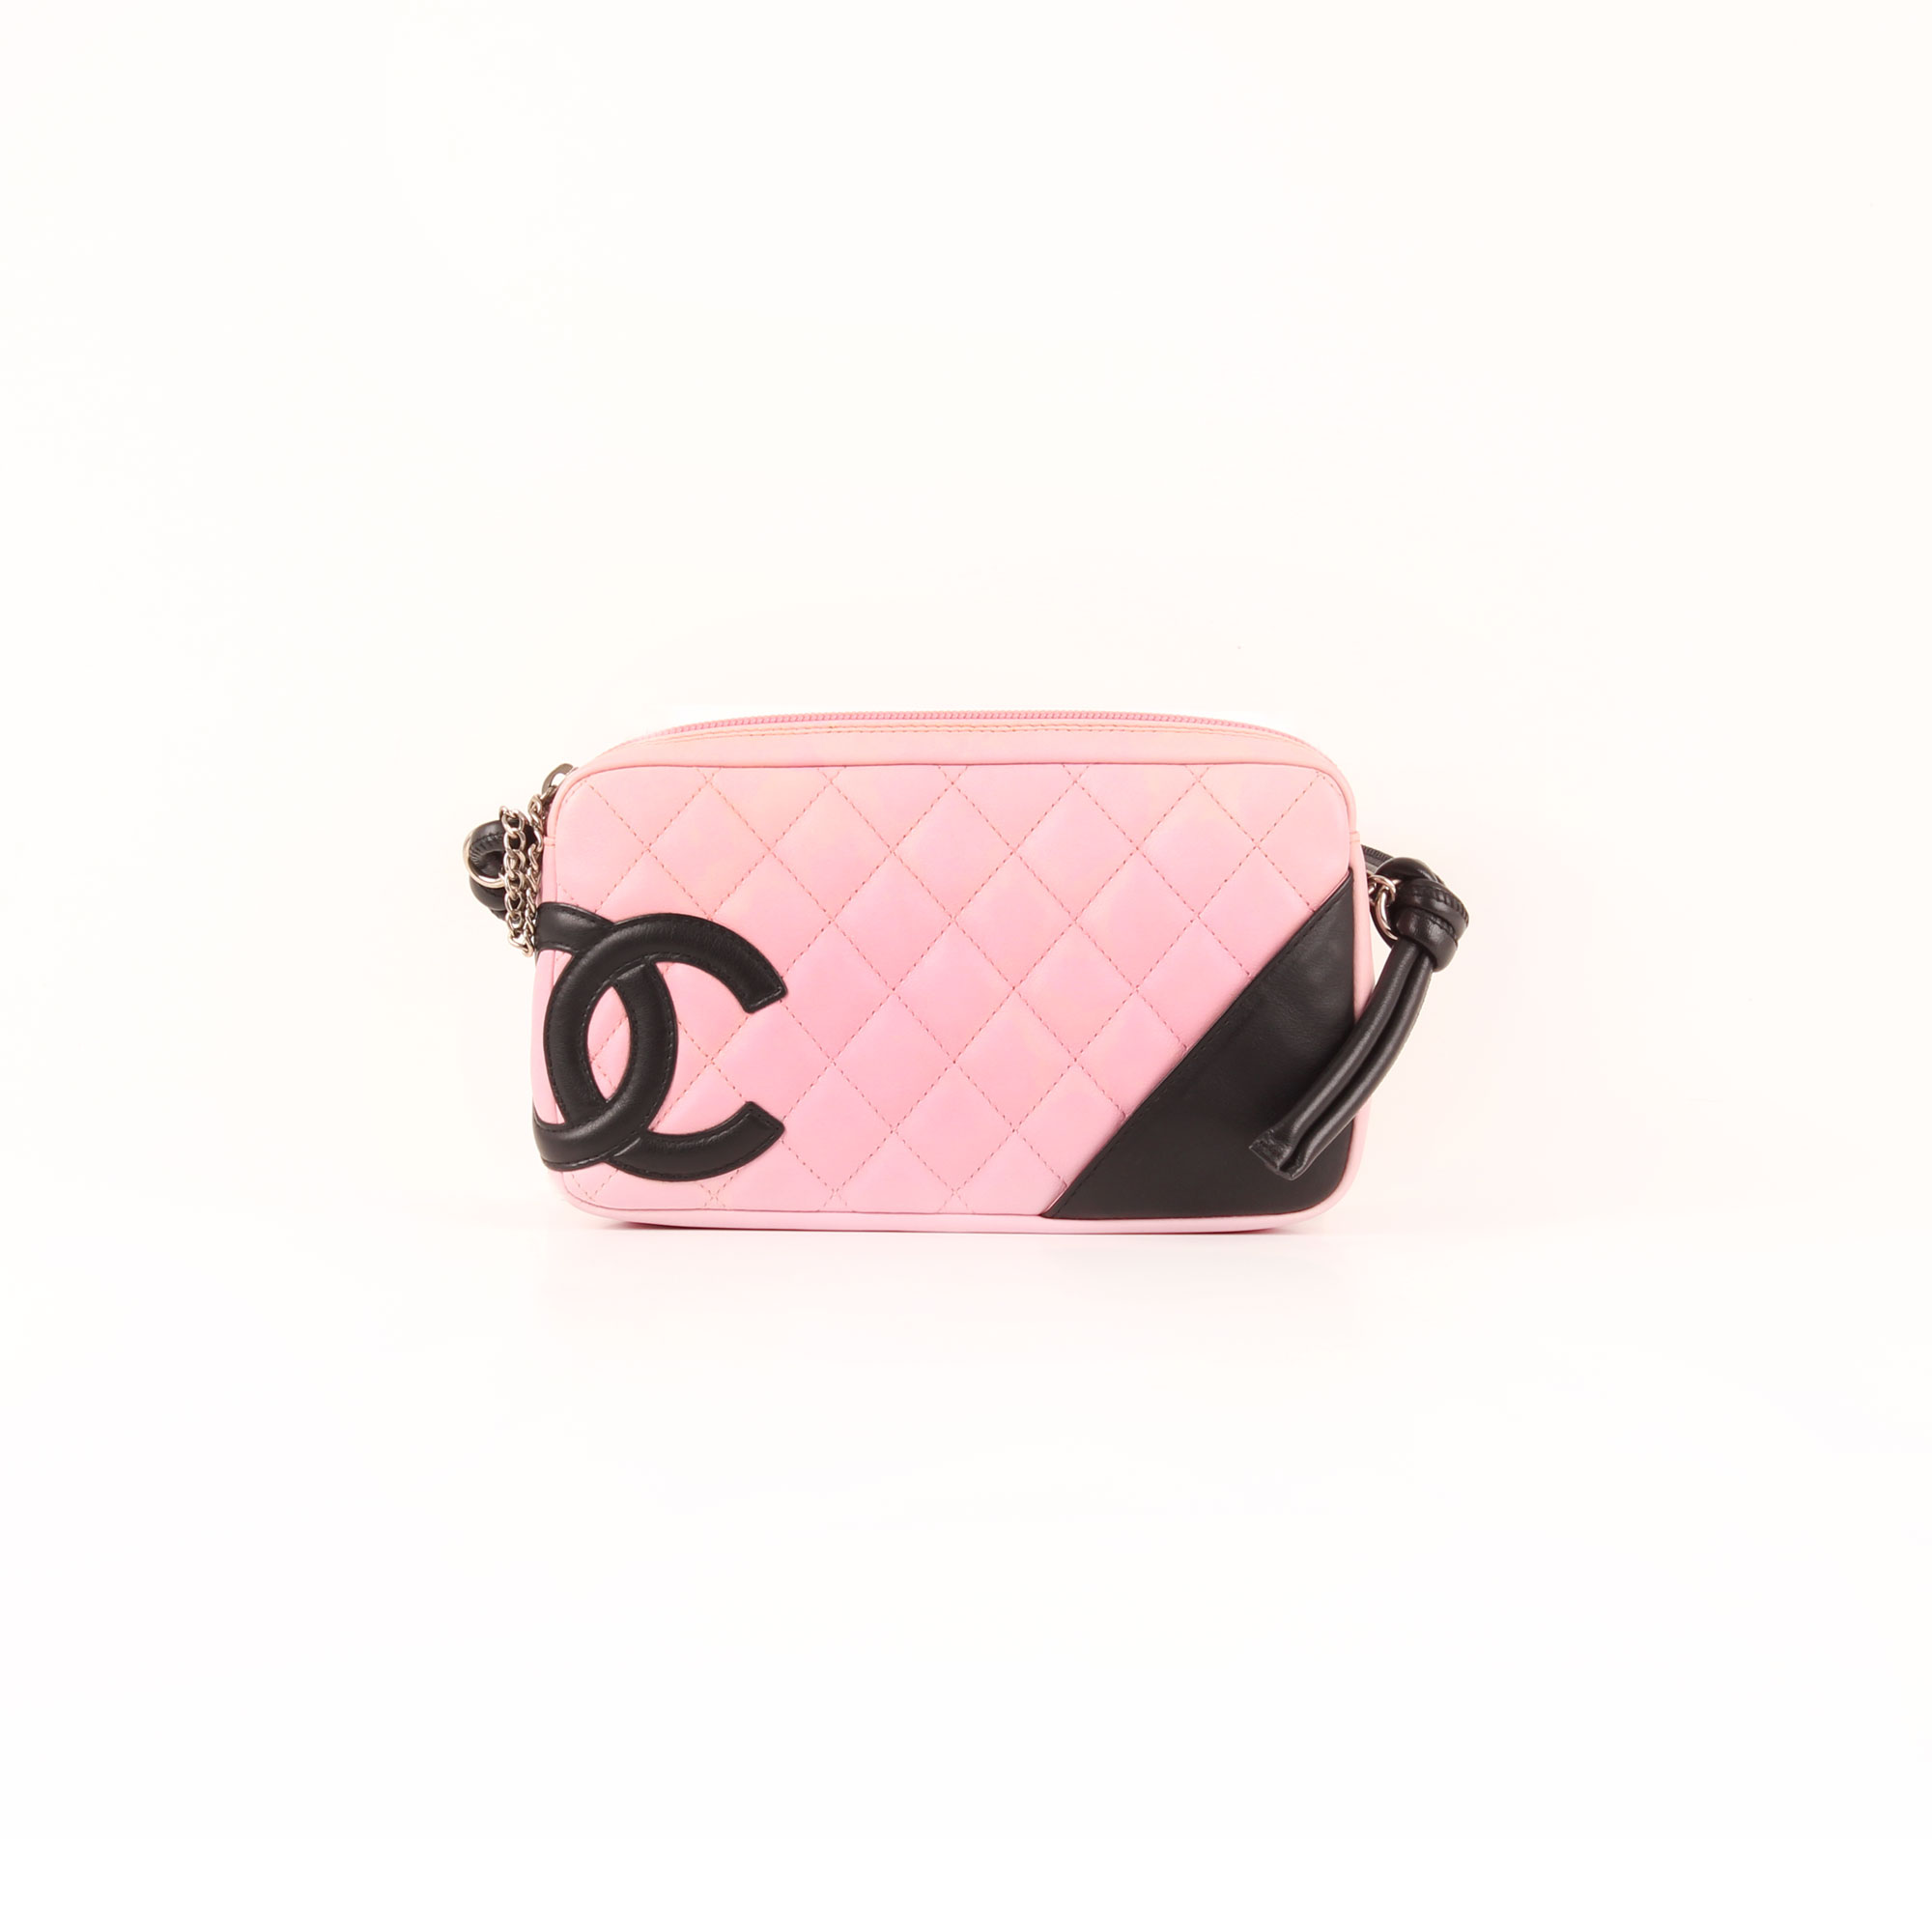 76bb8a514999 Front image of chanel cambon quilted pochette